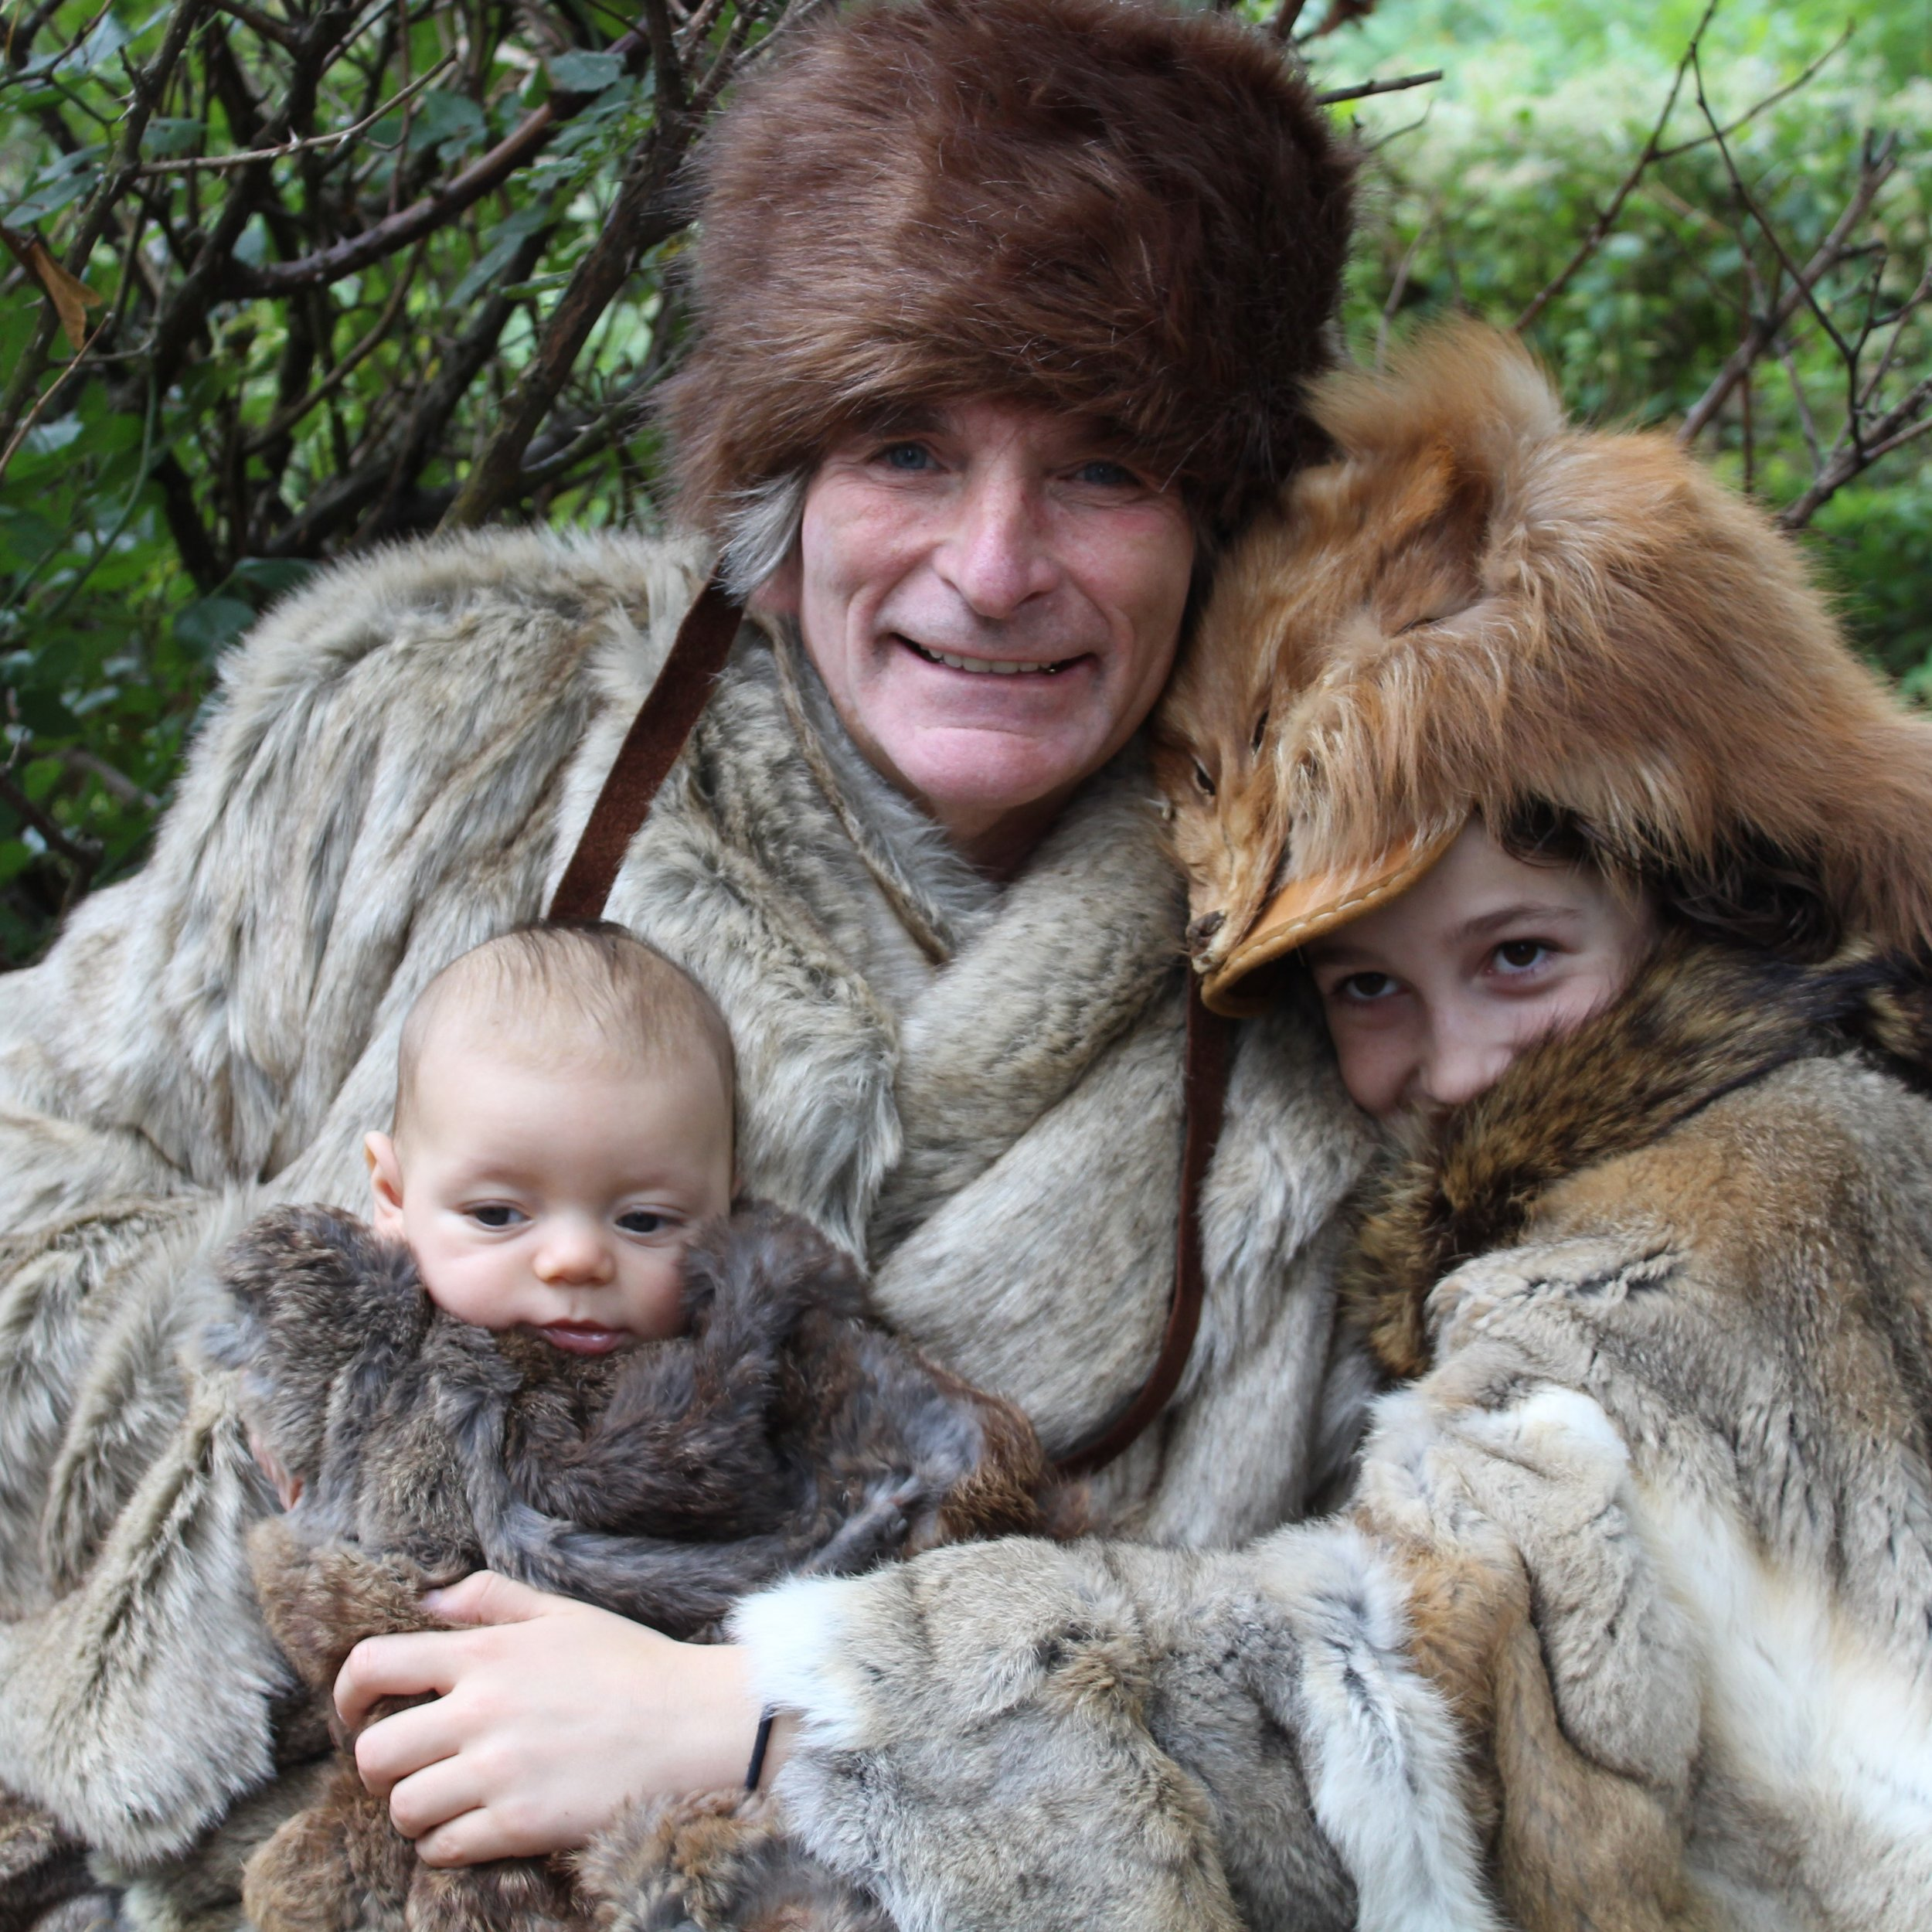 Robin Moore - shown demonstrating how adults and children in what is now Pennsylvania might have dressed for the Ice Age -- will conduct a program at the Eicher Arts Center in Ephrataon Nov. 4 at 2 p.m.